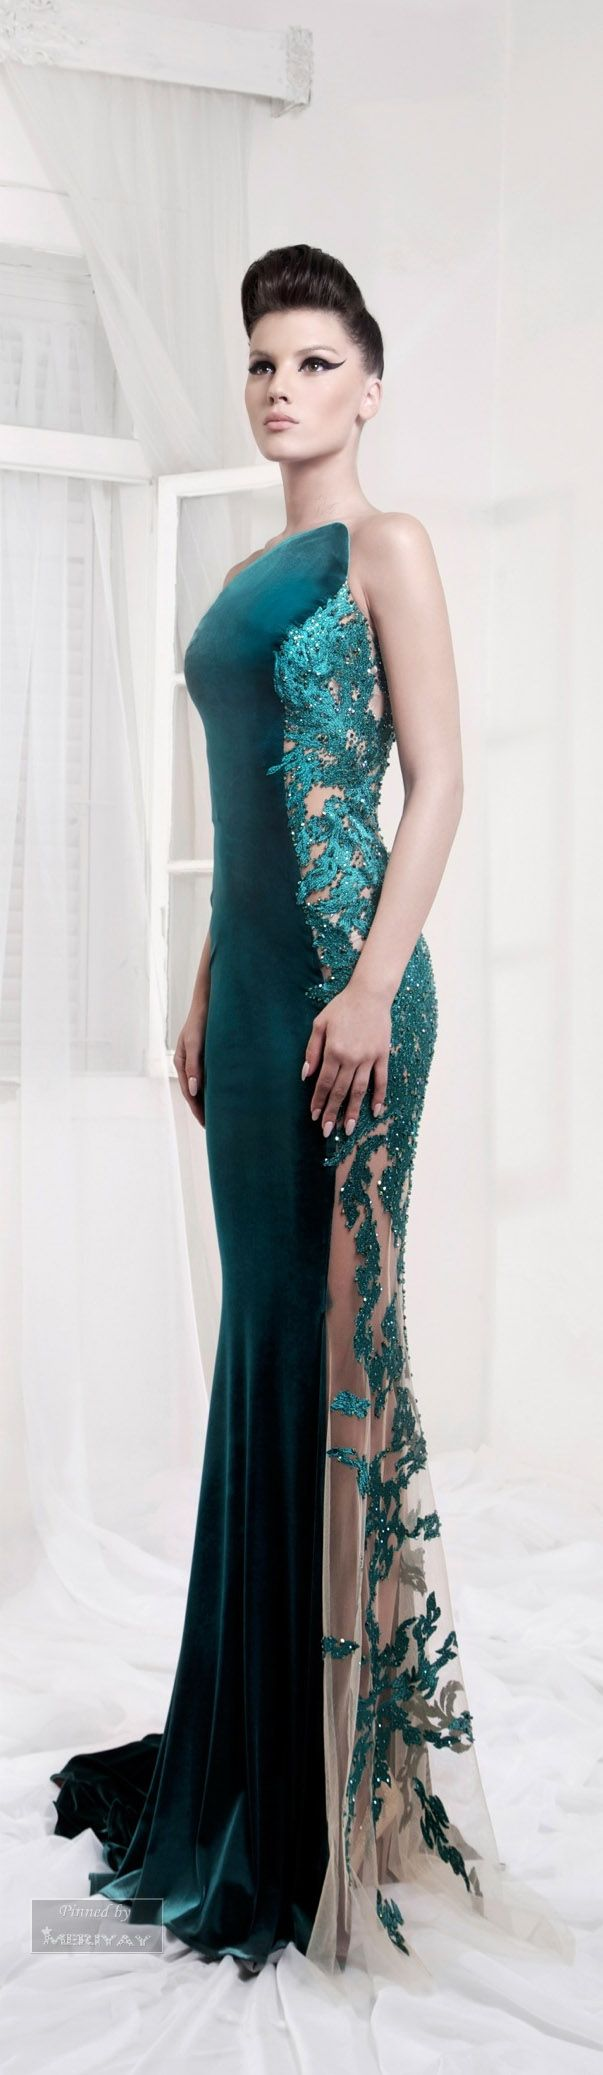 Eveninggowns Beautiful Sheer Sided Evening Gown With Green Beaded Lace We Are Custom Dress Maker Beaded Evening Gowns Couture Evening Dress Fashion Dresses